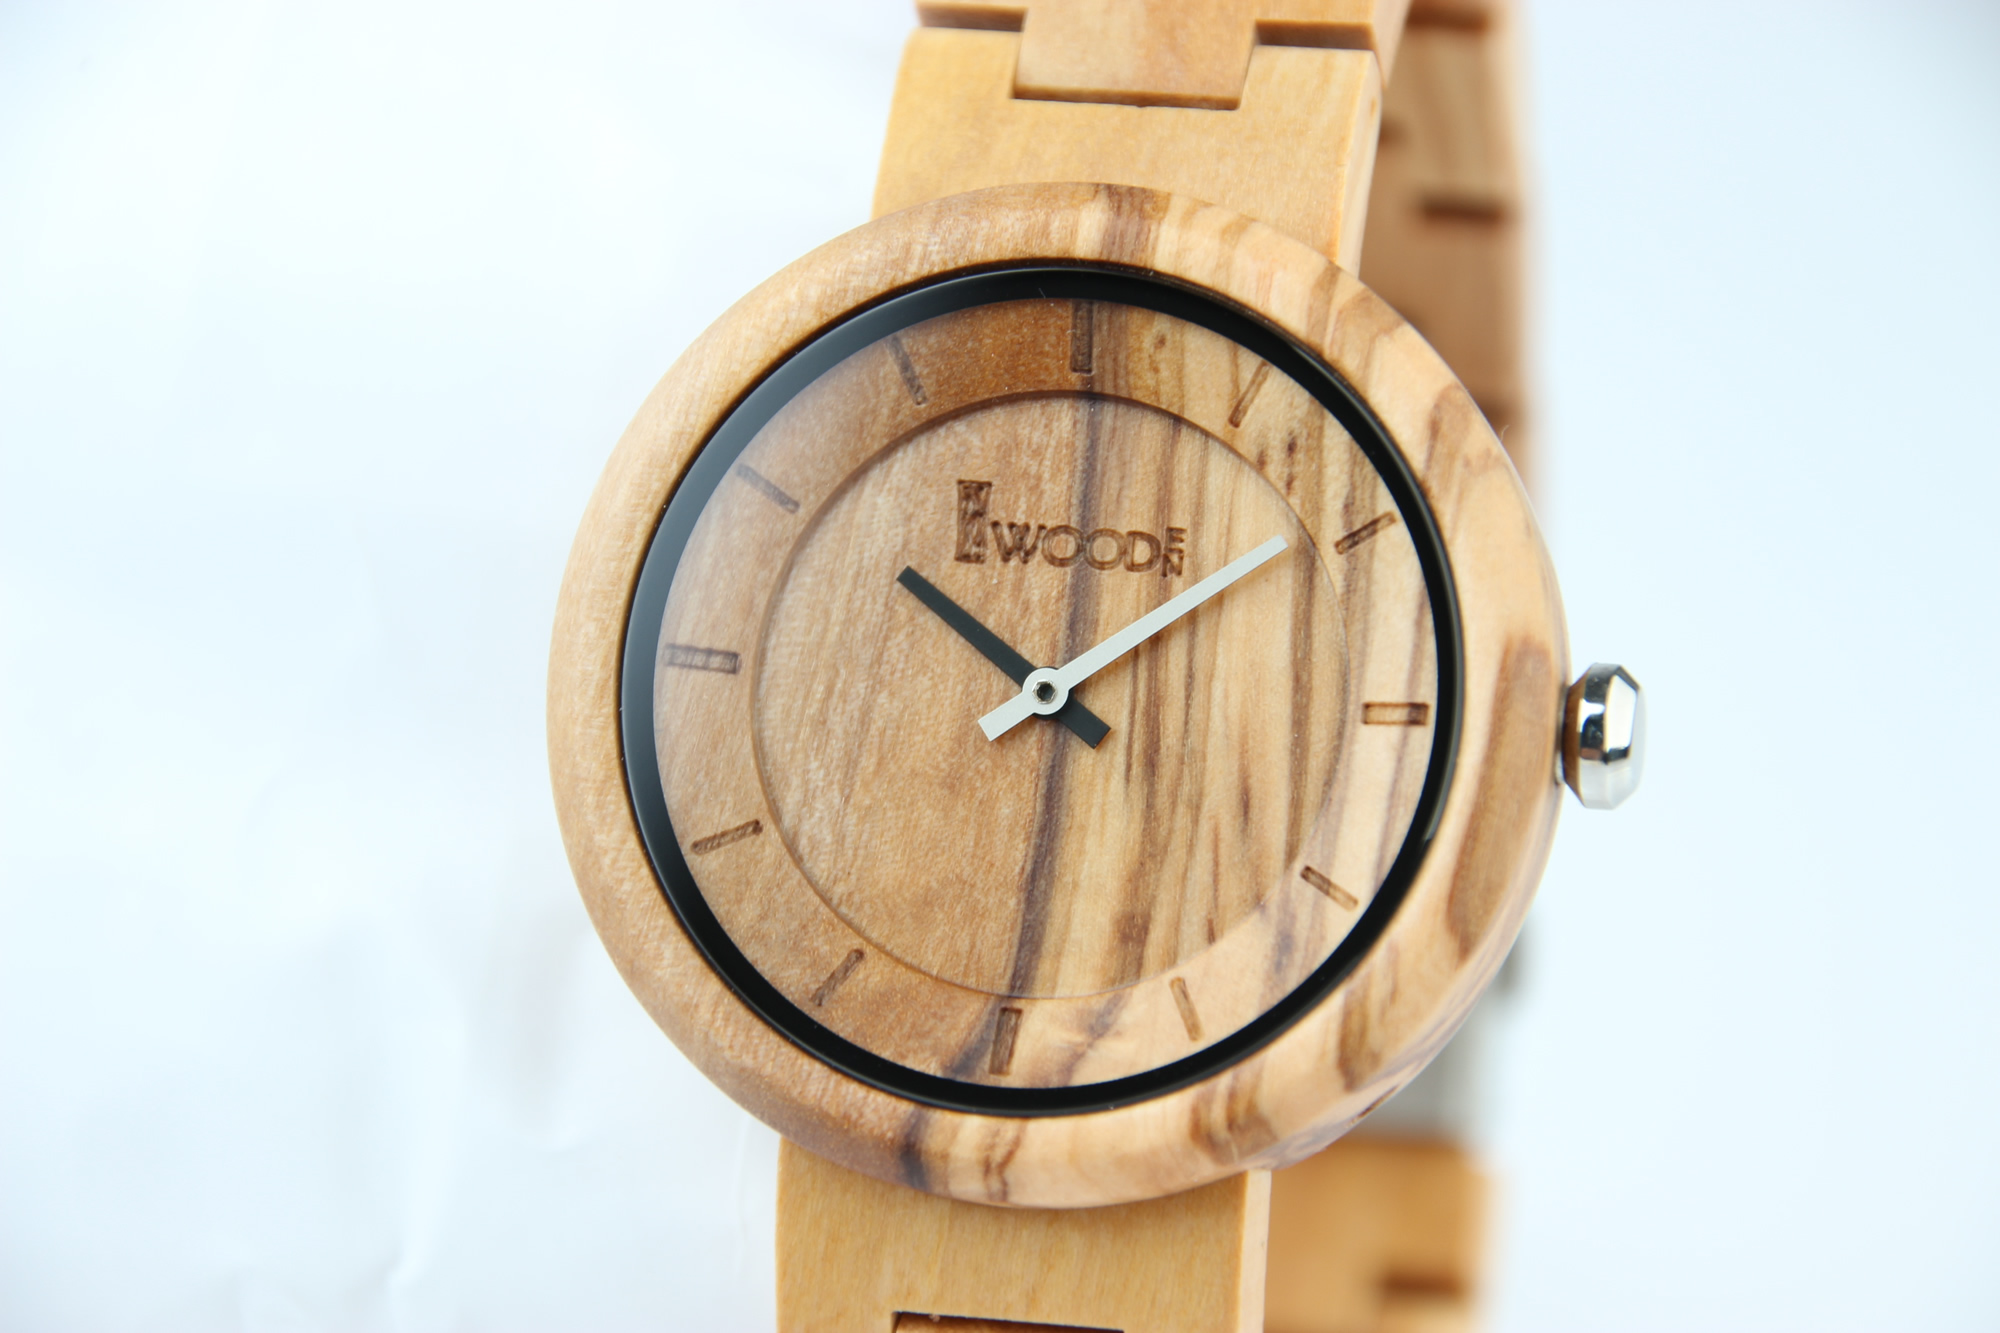 item watches gift in analog wrist free mens watch shipping with from box brand bird sandalwood red wooden quartz famous luxury bobo